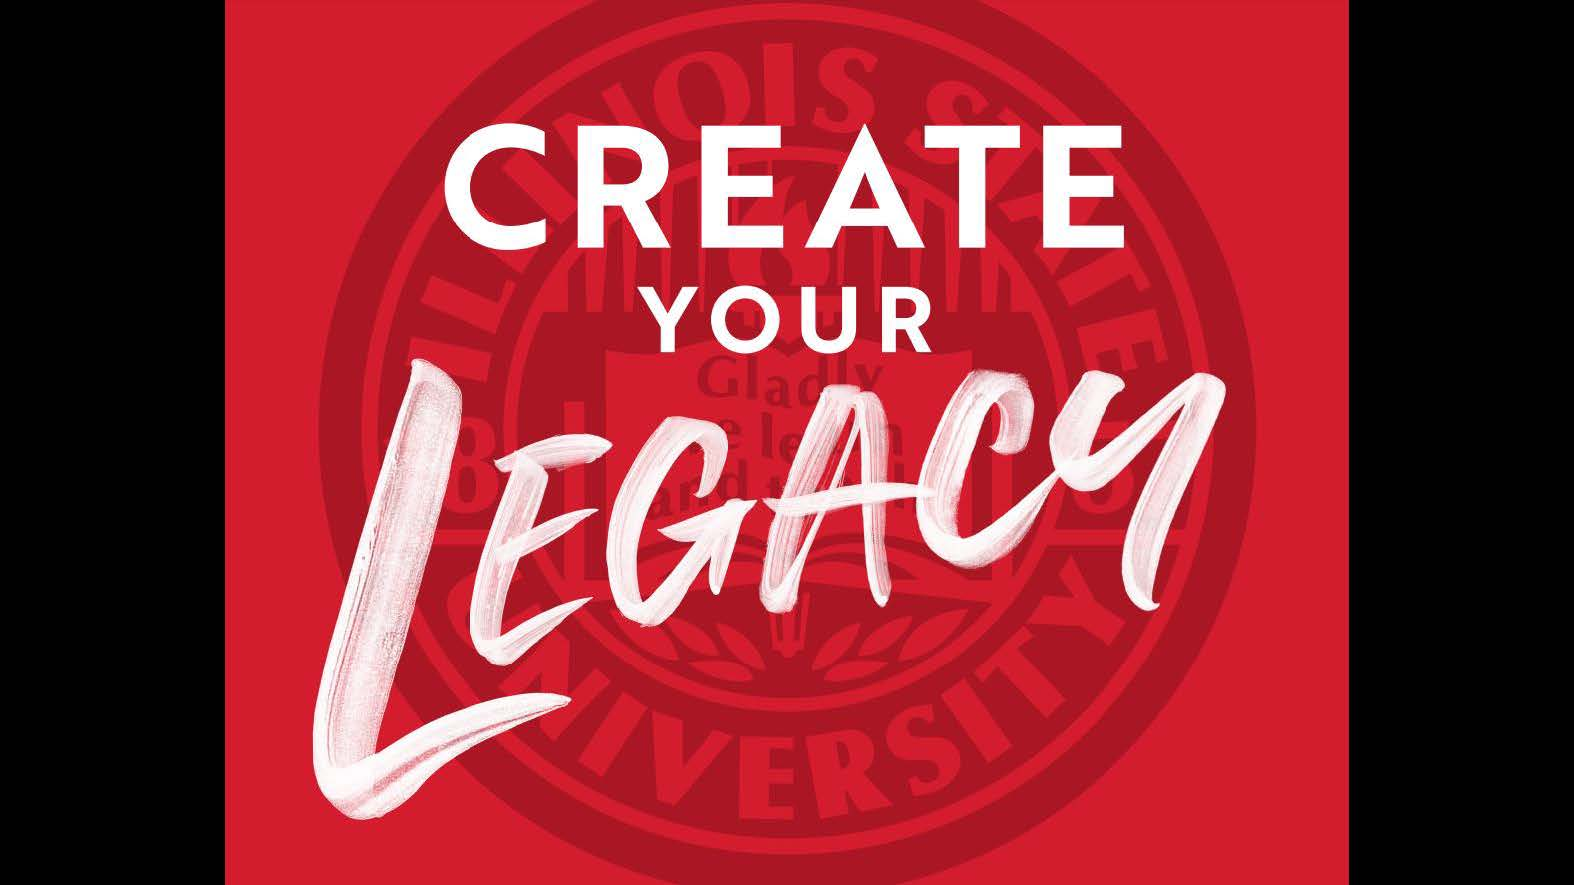 Marketing, Advertising-Campaigns (Silver): Create Your Legacy Motto, Illinois State University designed by Evan Walles for the Office of Admissions.